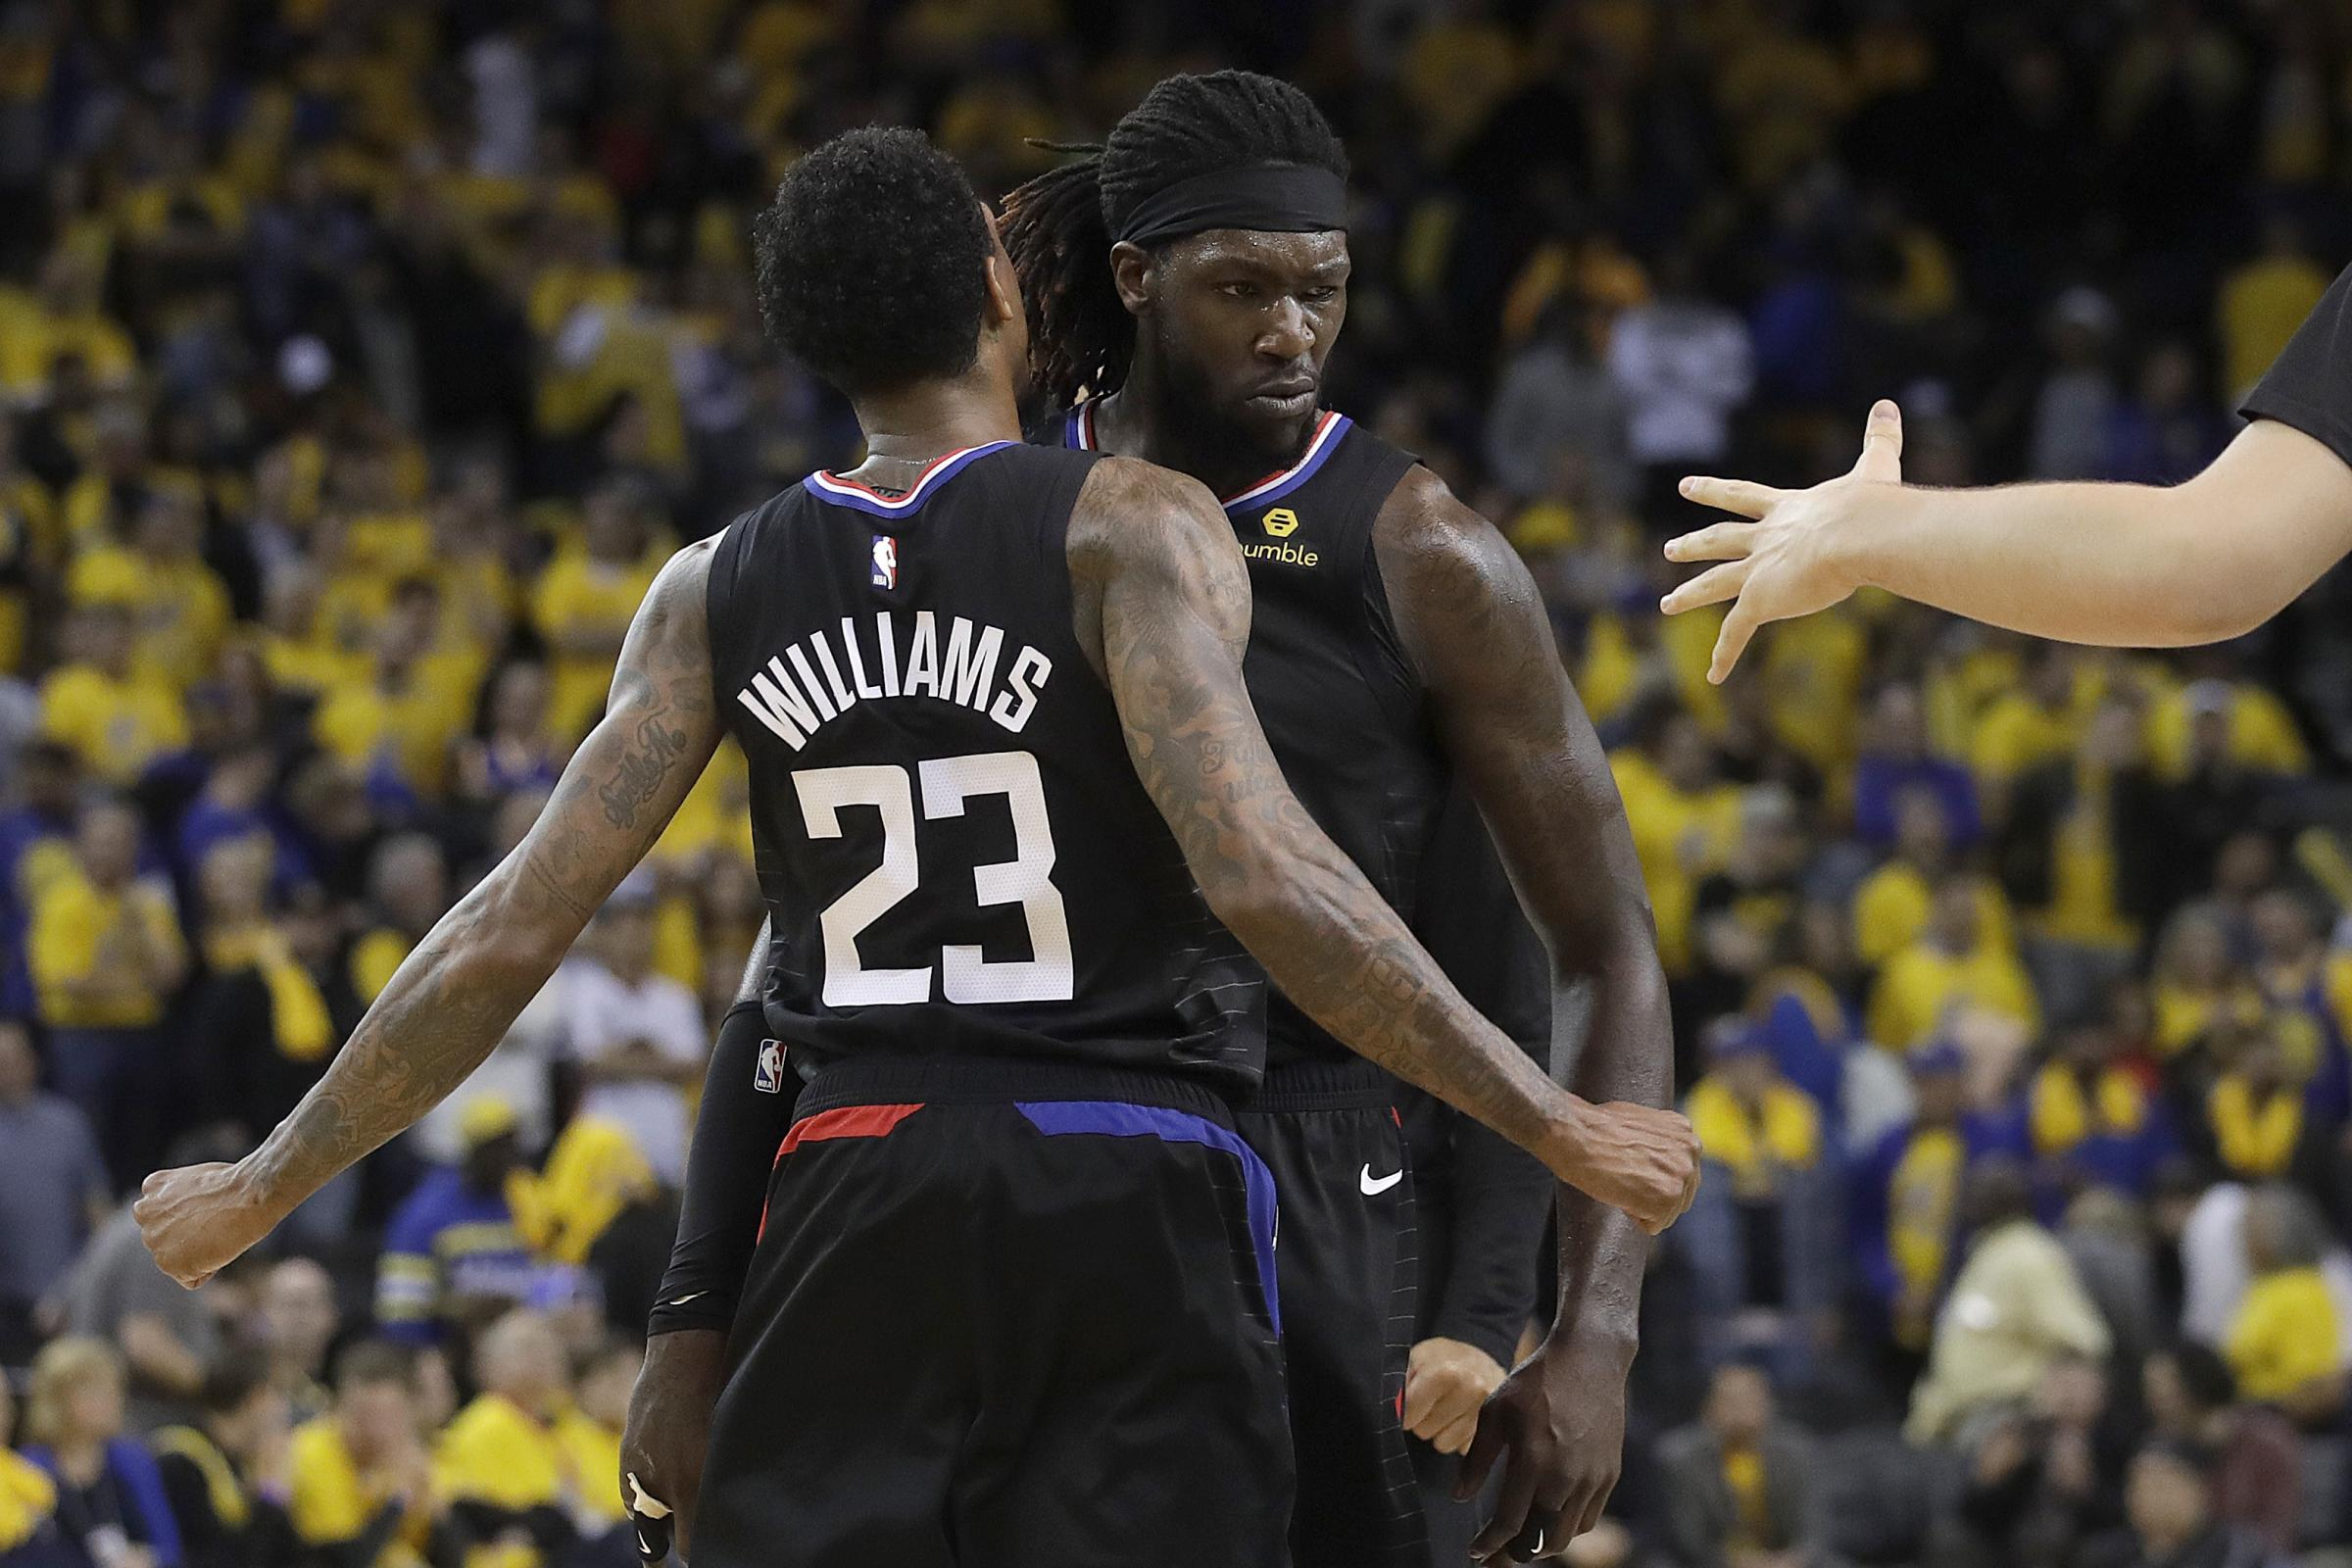 Los Angeles Clippers duo Lou Williams and Montrezl Harrell helped their side record a stunning fightback